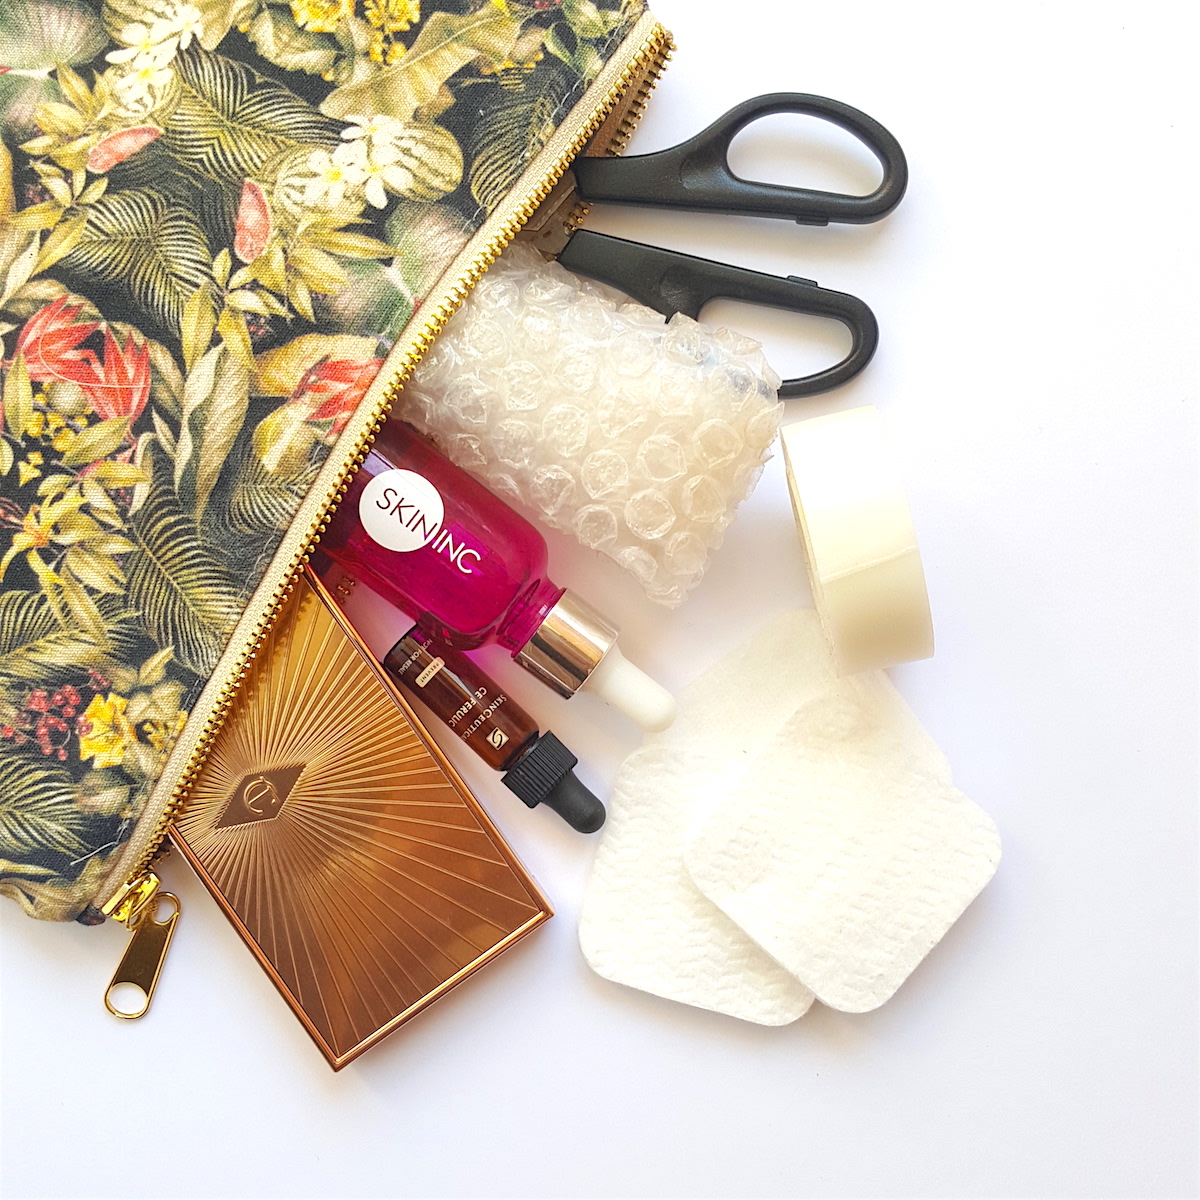 travel packing tips, beauty travel, beauty packing, how to pack your makeup, how to pack your skincare